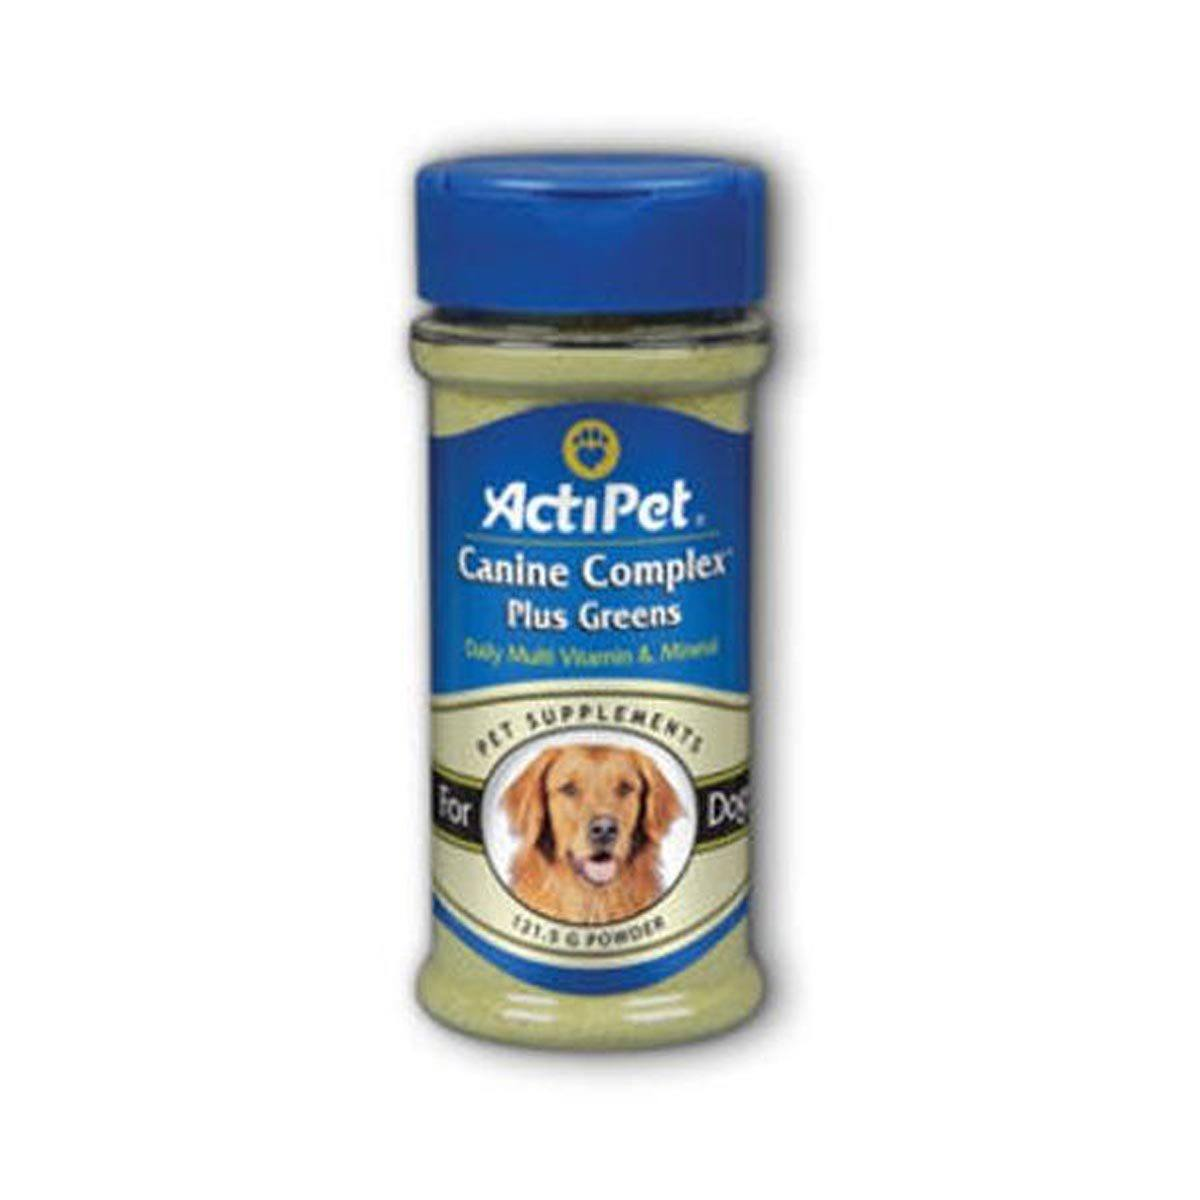 ActiPet Canine Complex Plus Greens 121.5g Powder Pet Supplements ActiPet  (1058034024491)